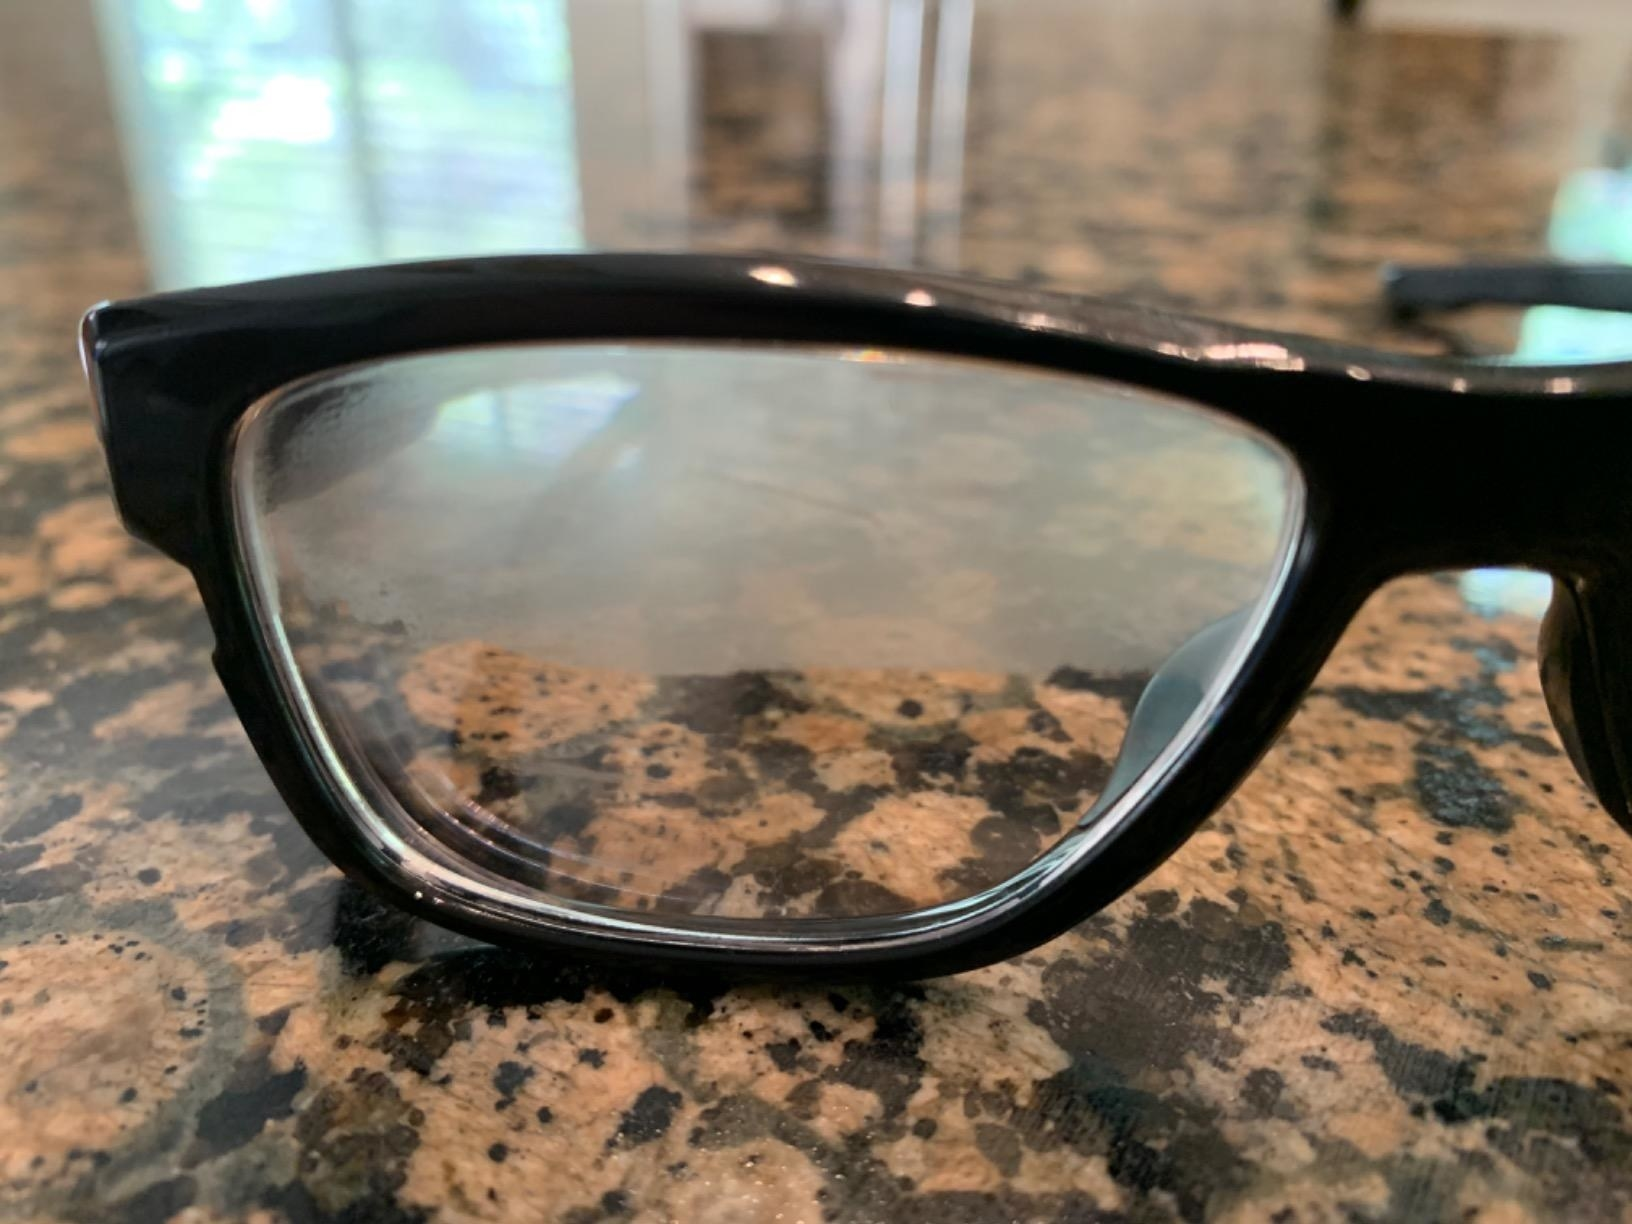 A glasses lens with fog on the top half and no fog on the bottom half